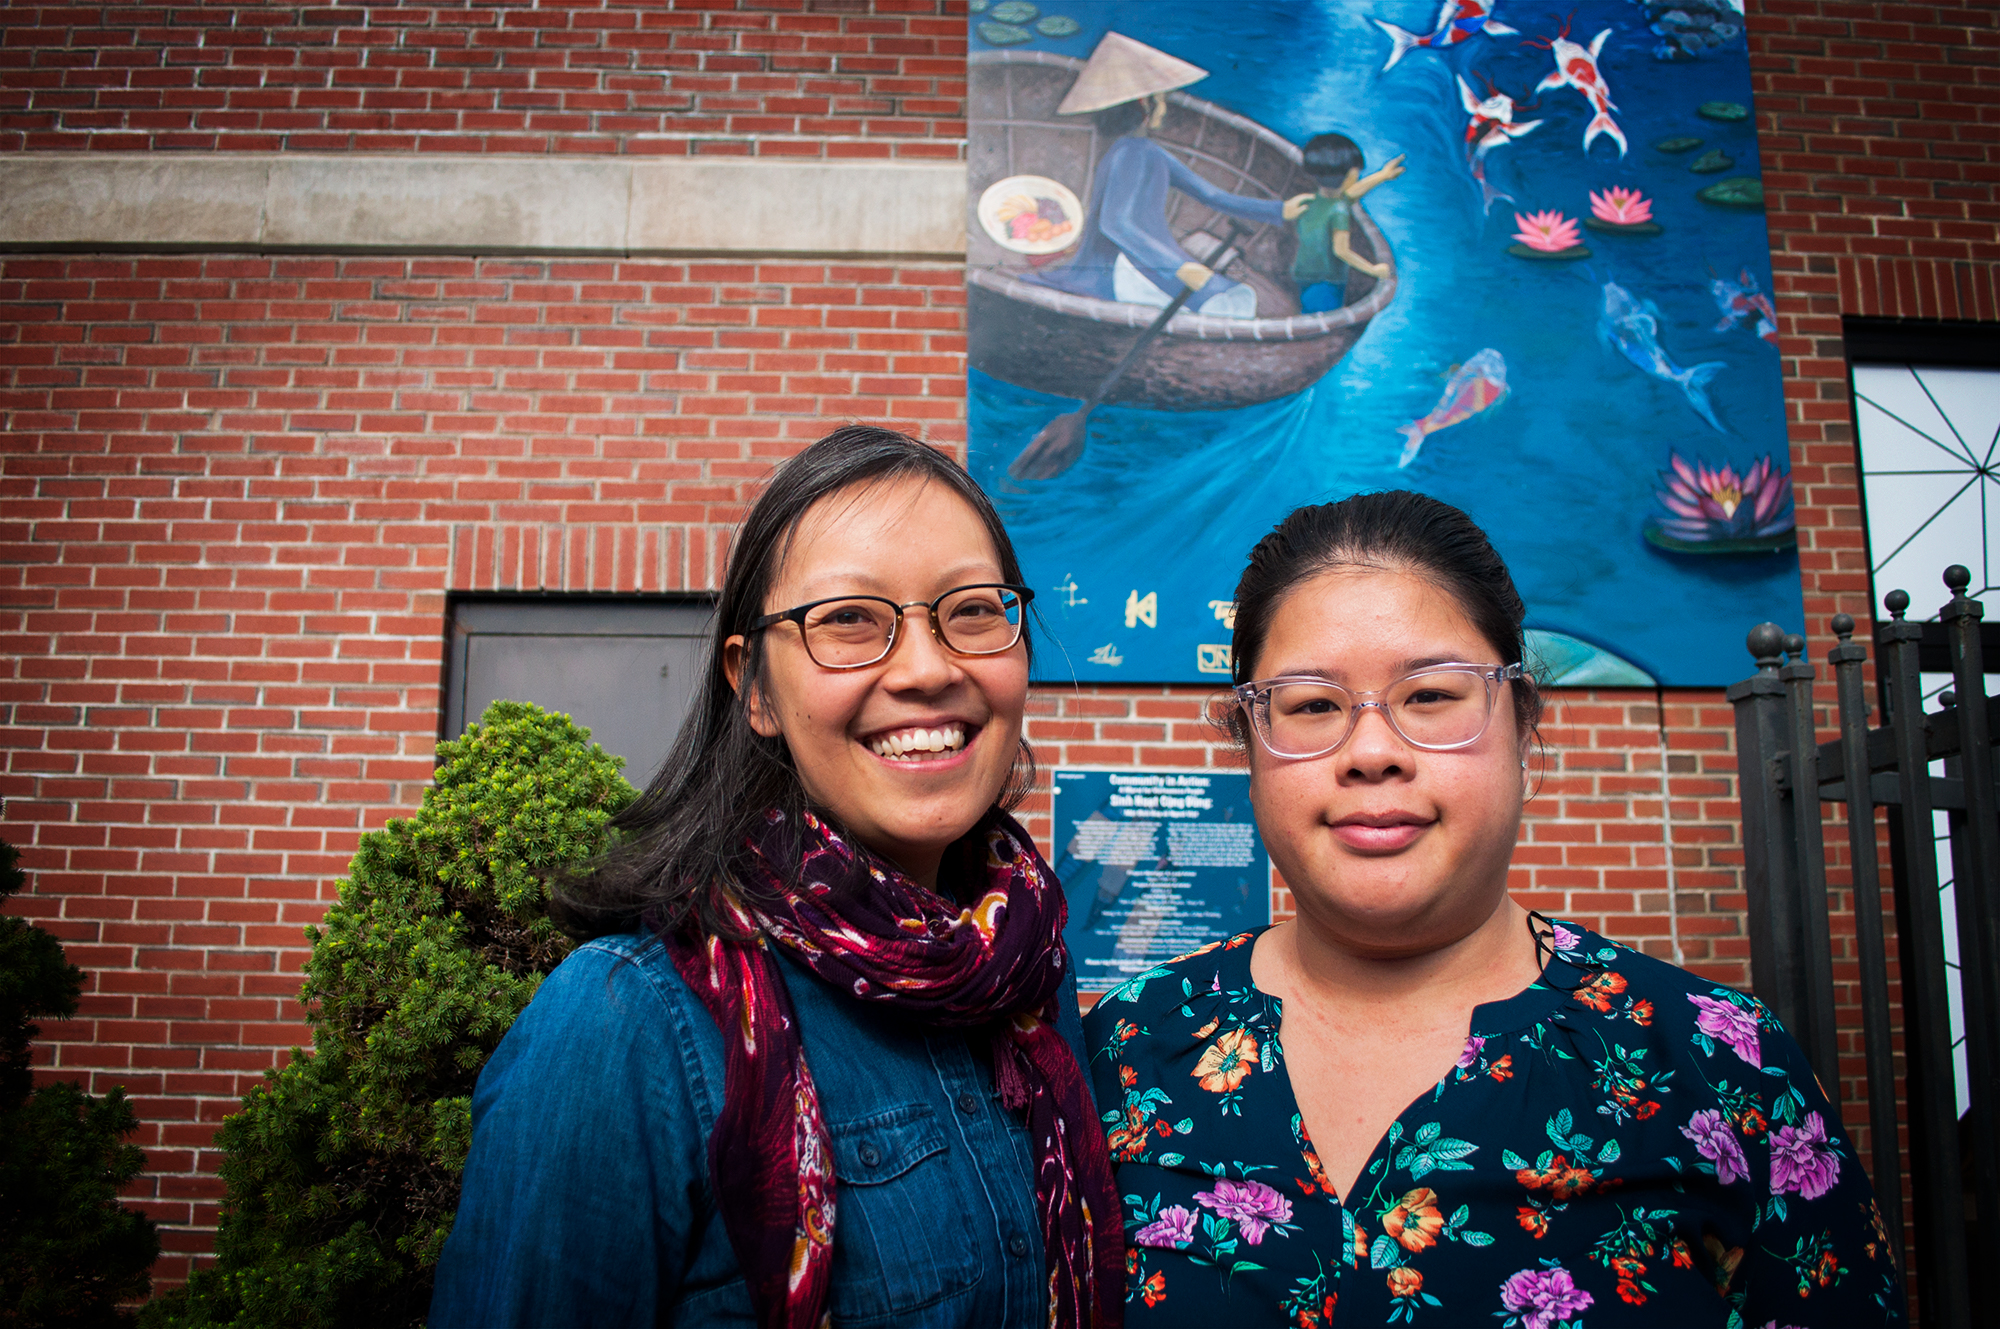 Amy (left) pictured with Carro, a former A-VOYCE youth from 10 years ago, in front of the new community mural in Dorchester's Fields Corner.